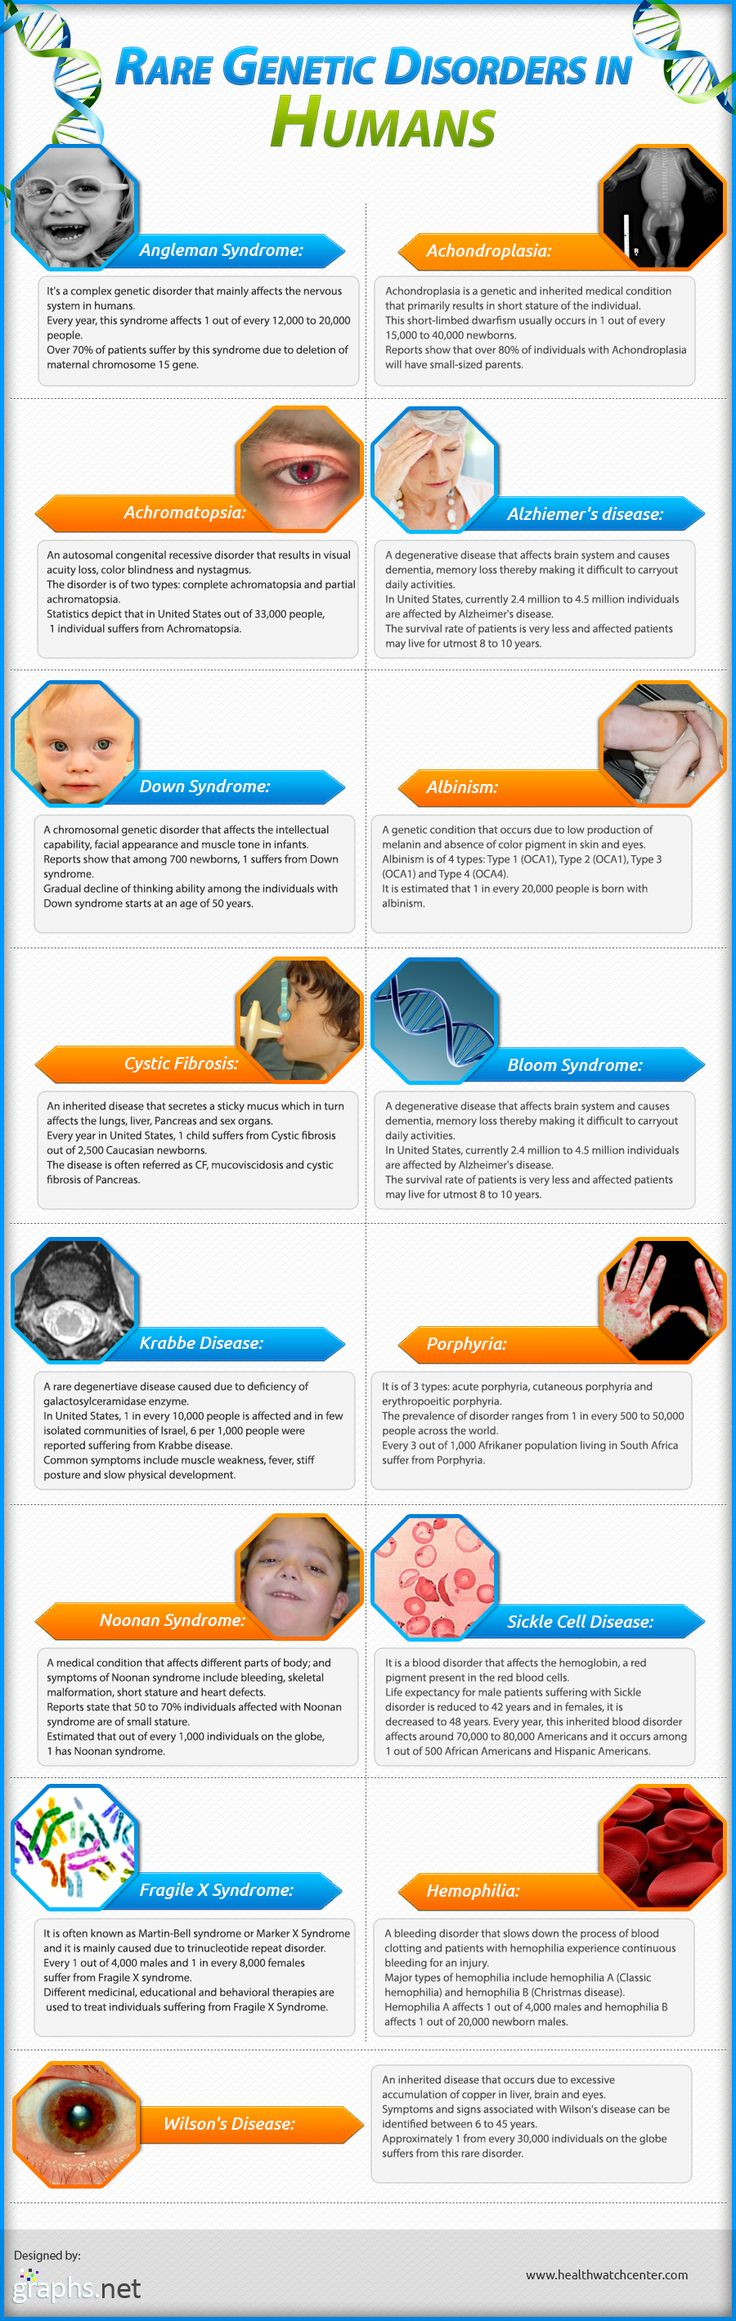 Now a day's most of the people are suffering from genetic diseases.  This info graphic depicts on various types of genetic disorders. Reports states that 60-70% individuals affected with Noonan syndrome.